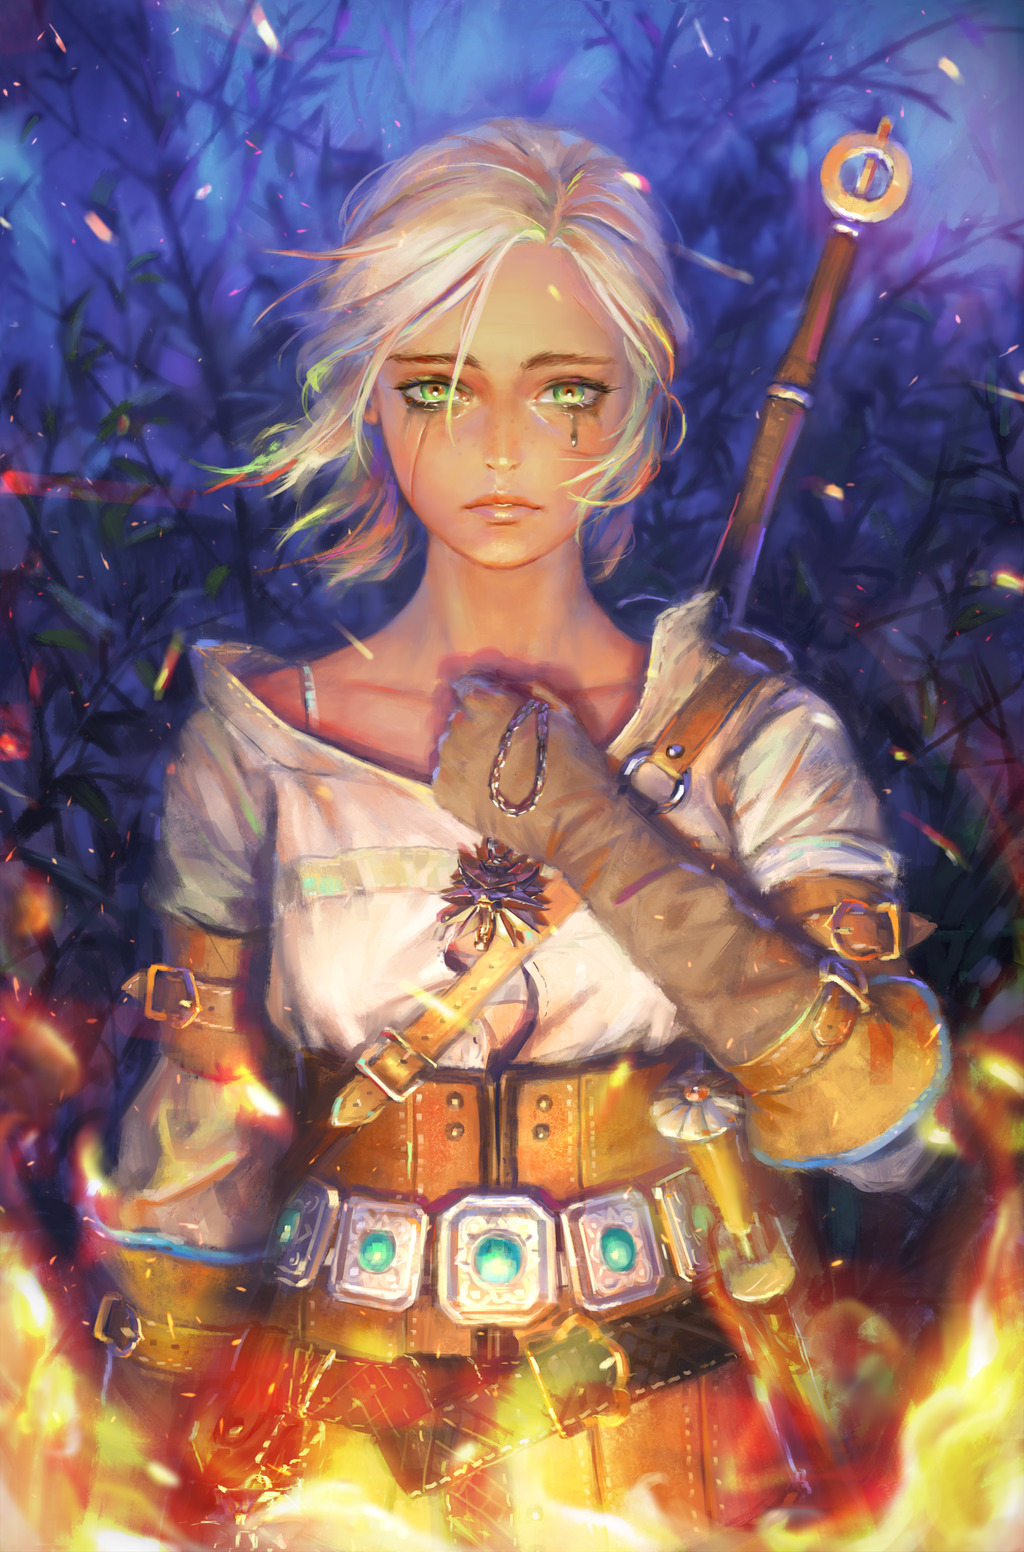 The Witcher 3 3d Wallpaper Ciri Fire Tears The Witcher 3 Wild Hunt Wallpapers Hd